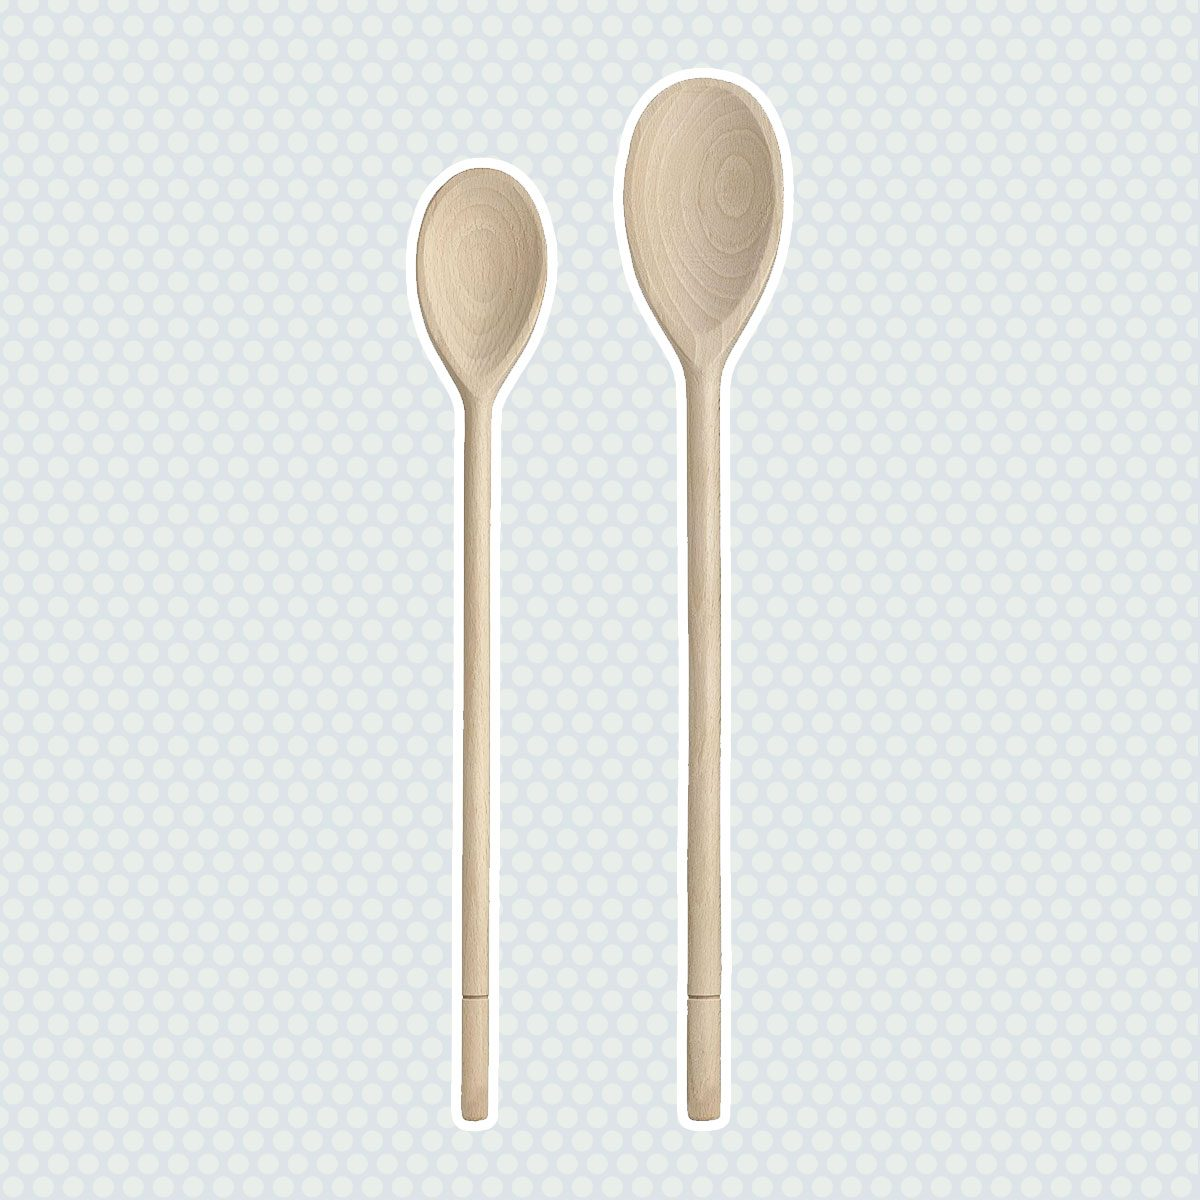 HIC Wooden Spoon Set, Set of 2, 14-Inch and 16-Inch